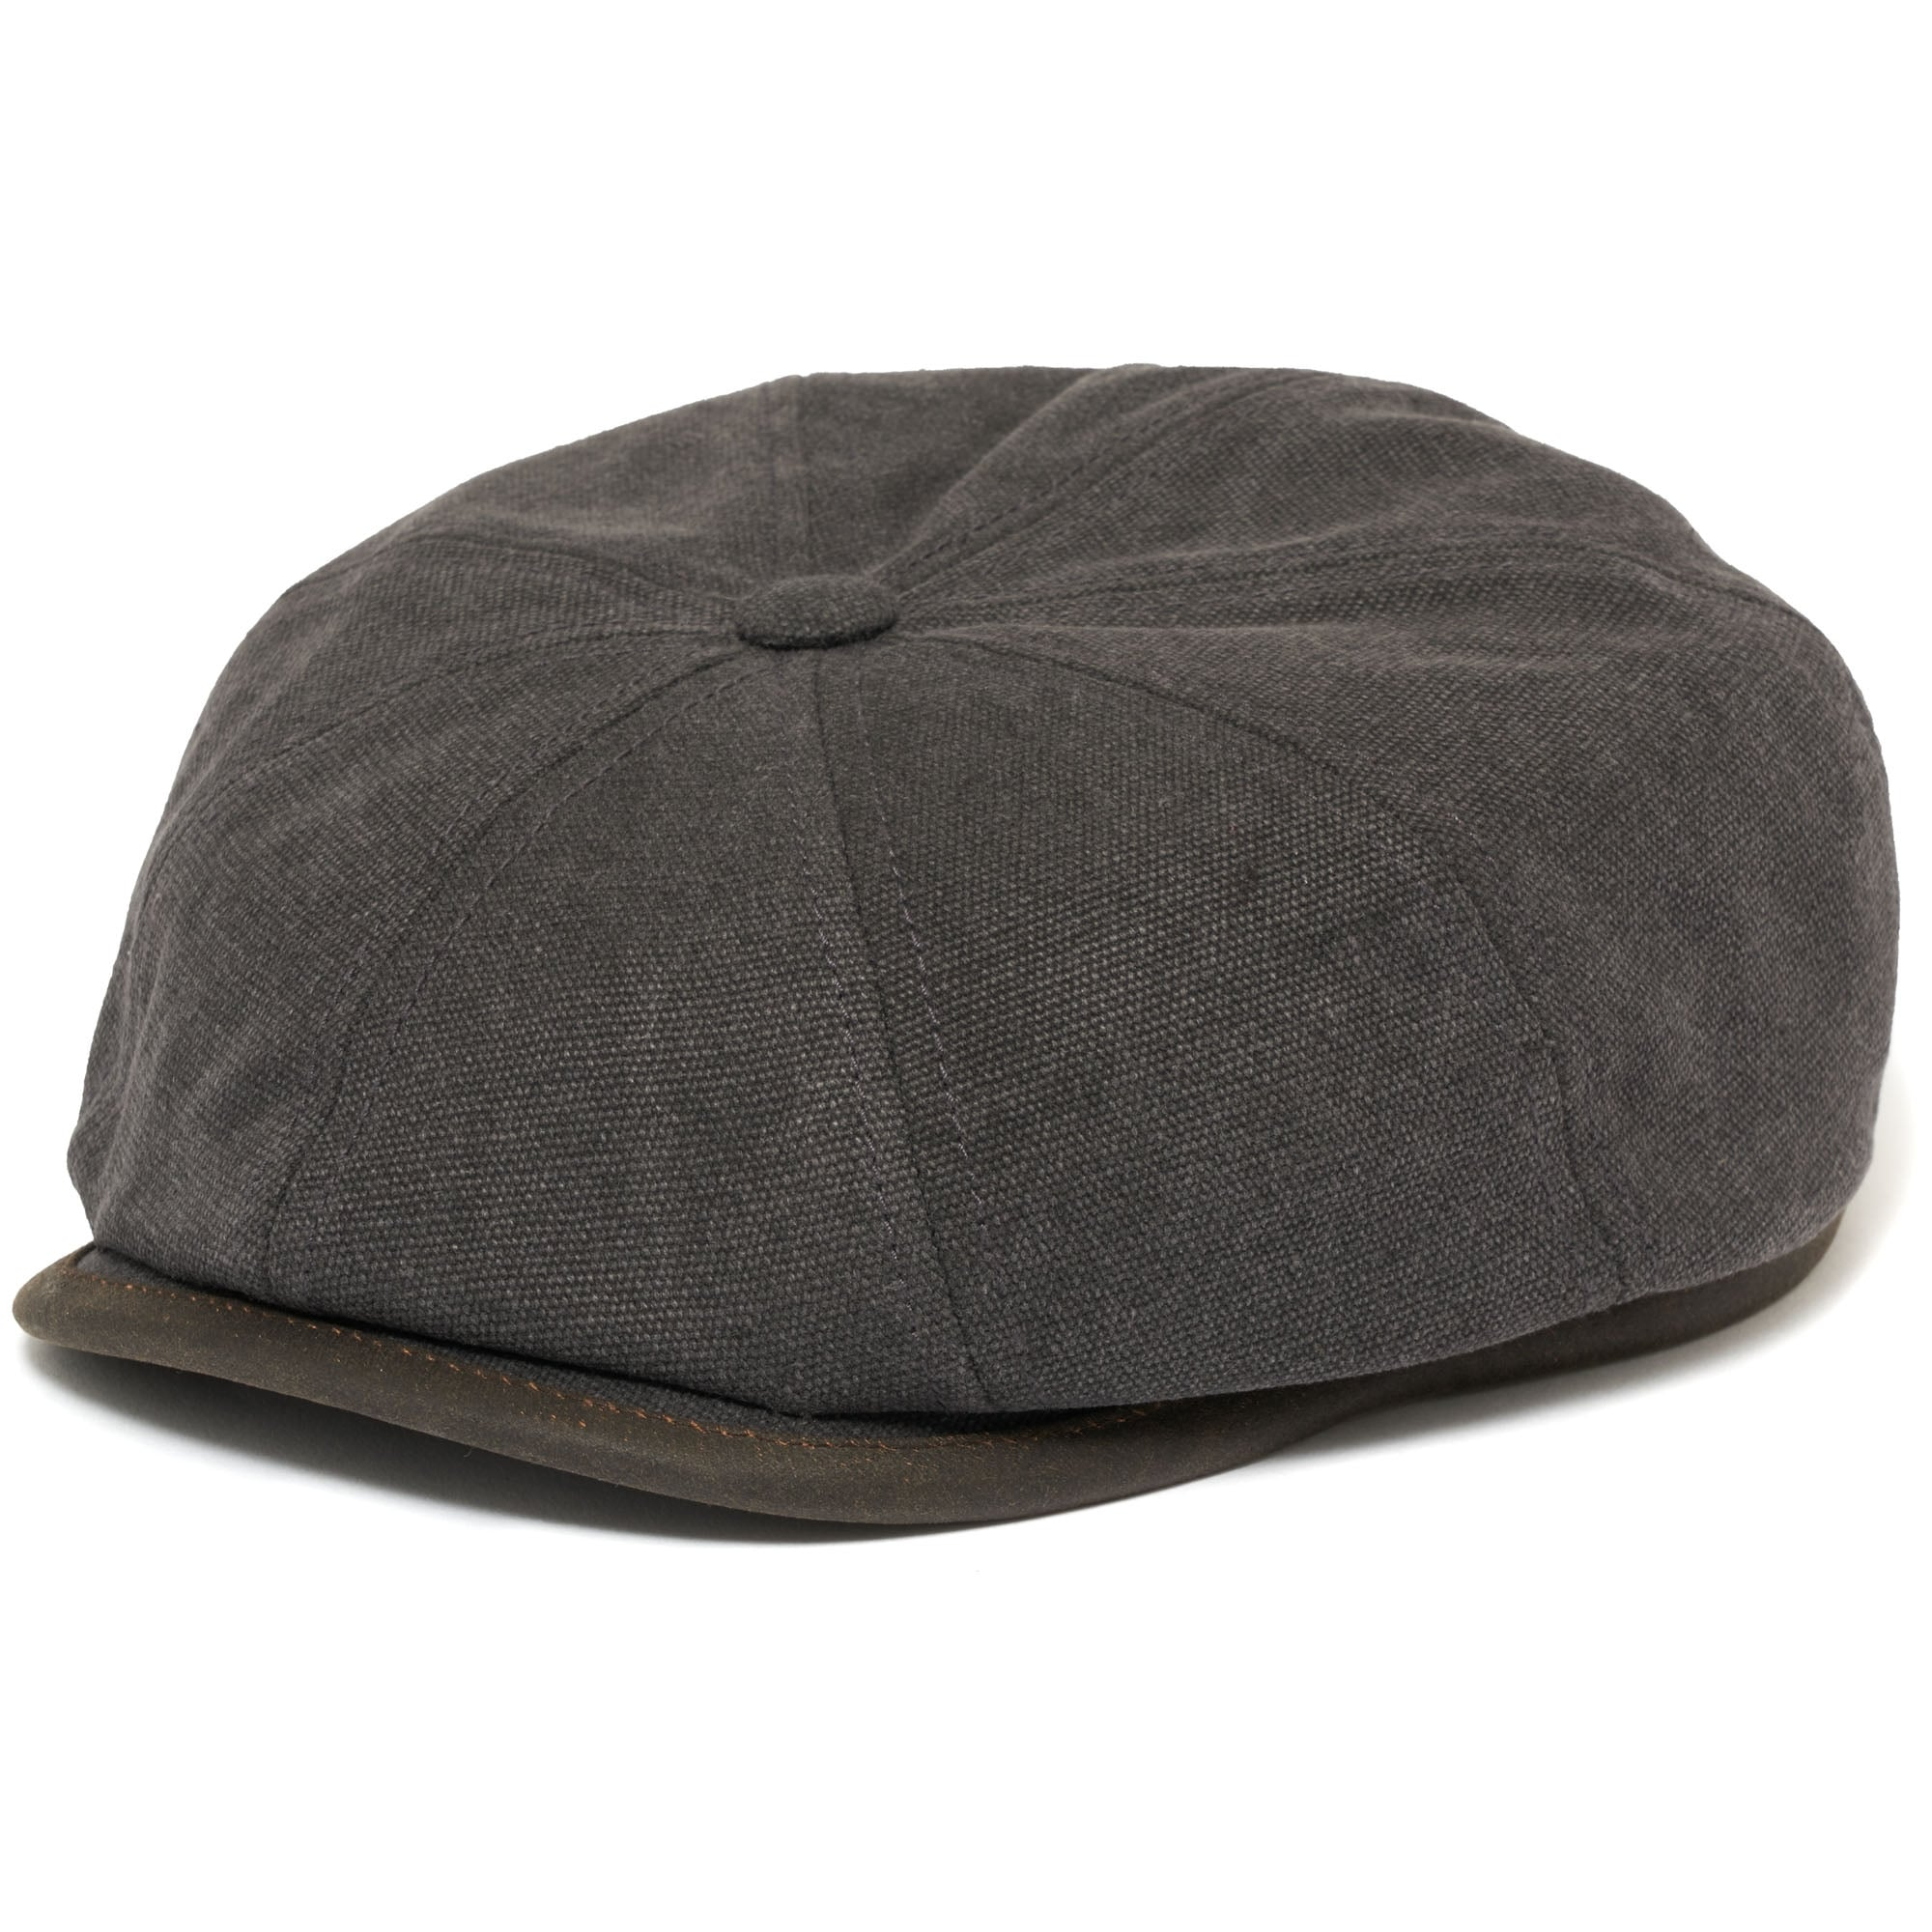 58272350 Stetson Anthracite Canvas Hatteras Flat Cap | Stuarts London